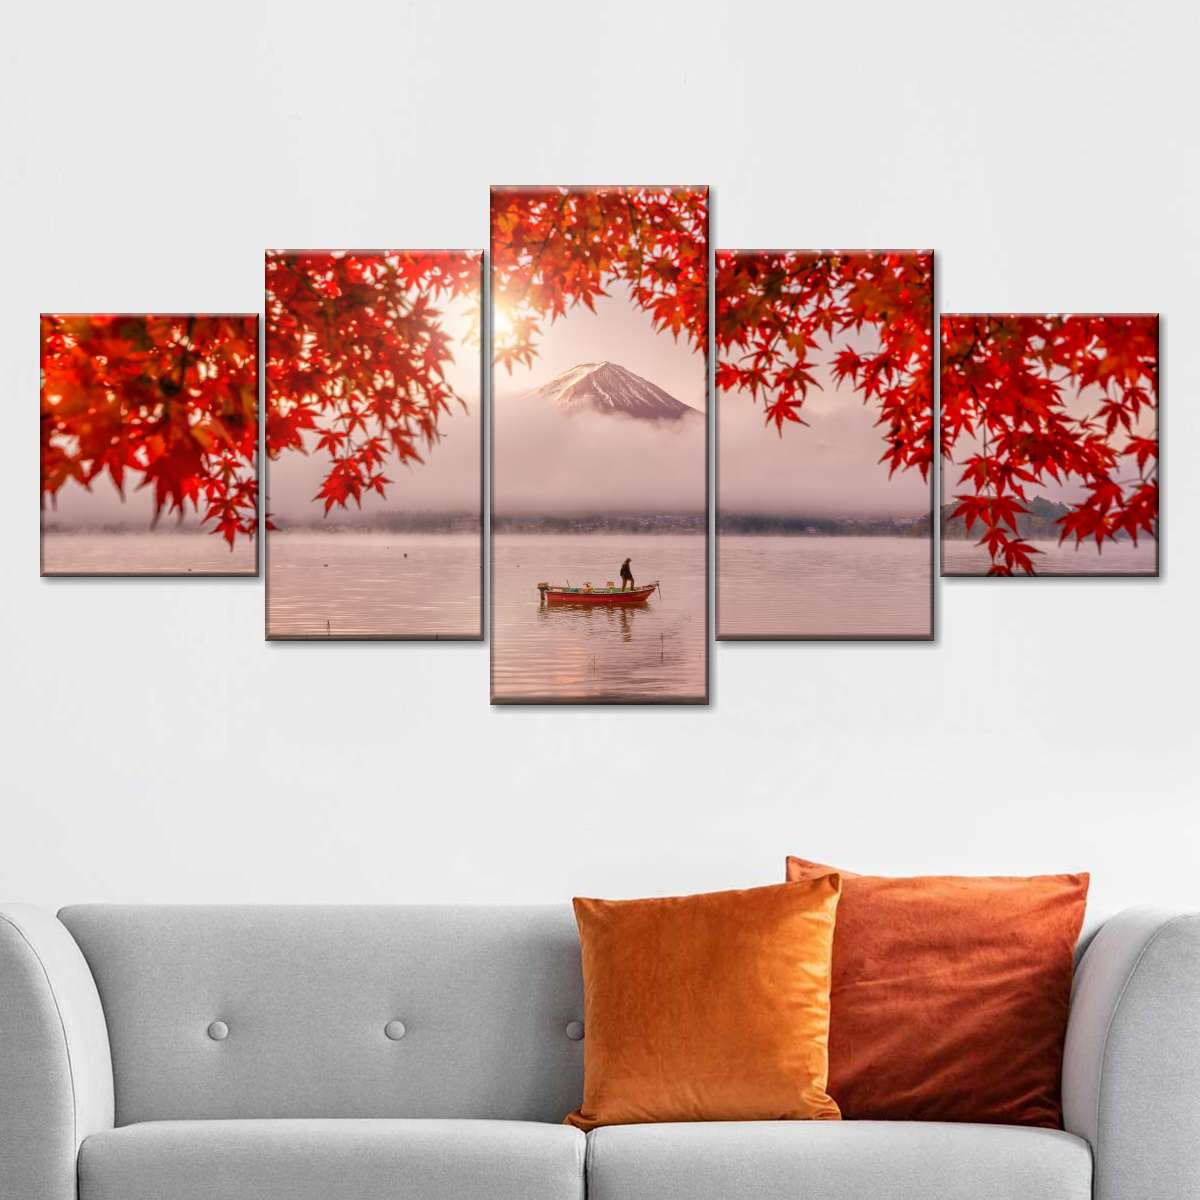 Red Autumn Leaves In Fuji Multi wall art padstyle